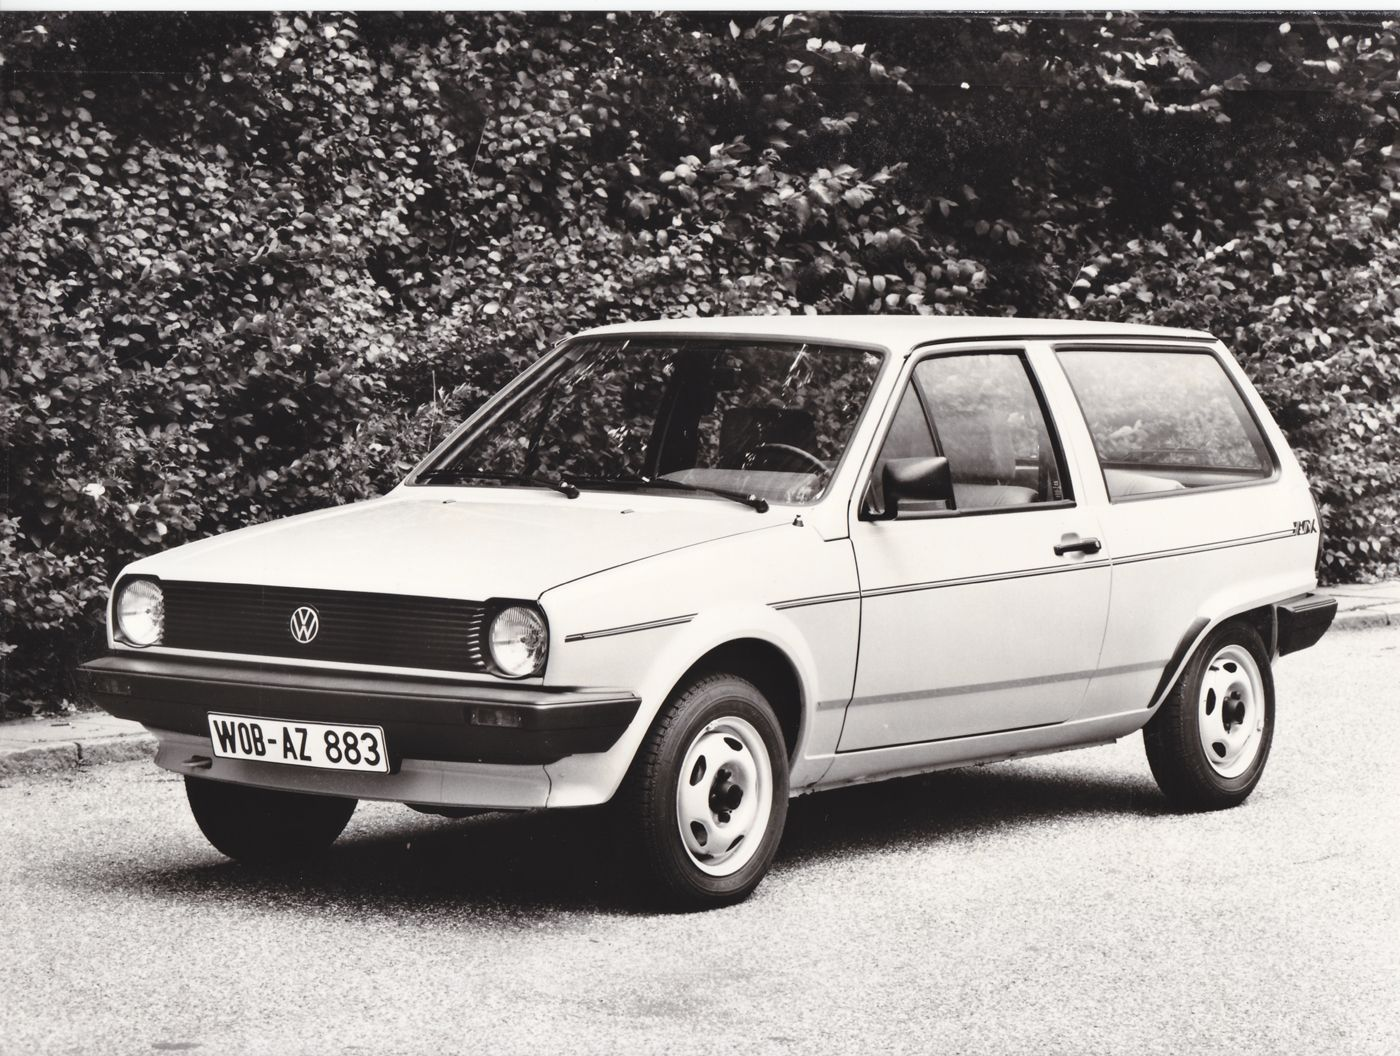 volkswagen polo fox 1985 car press photos volkswagen. Black Bedroom Furniture Sets. Home Design Ideas